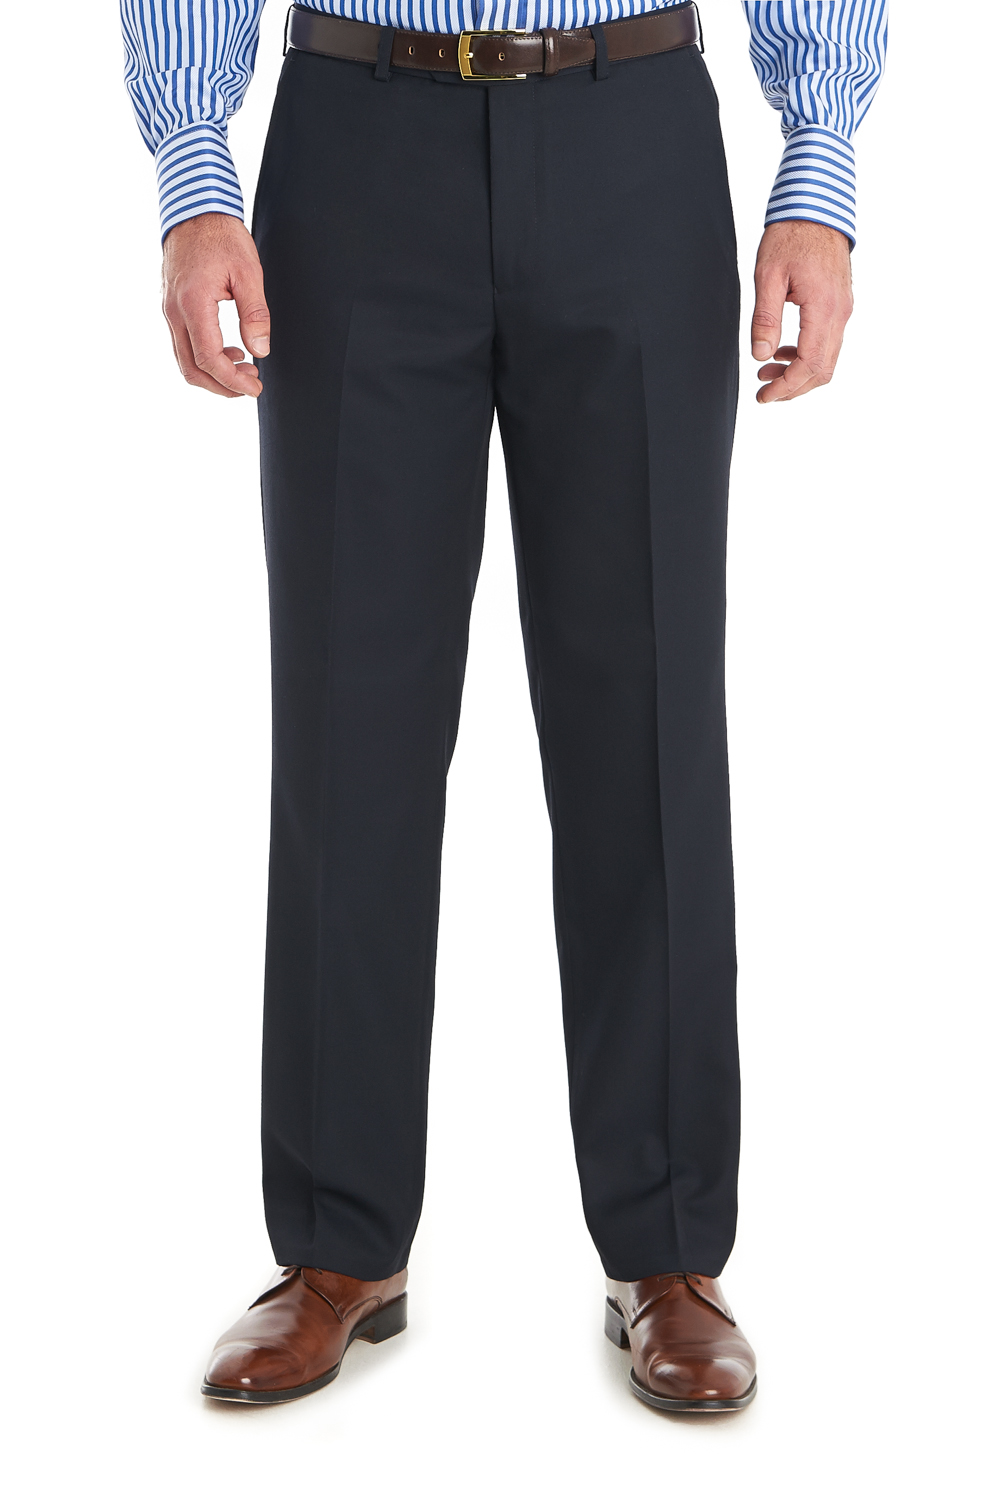 Men's Trousers on Sale Discover our selection of cheap suits and tailoring in the Suit Direct Clearance Sale. Choose from structured suit jackets, sleek shirts, sophisticated ties, smart trousers and overcoats.